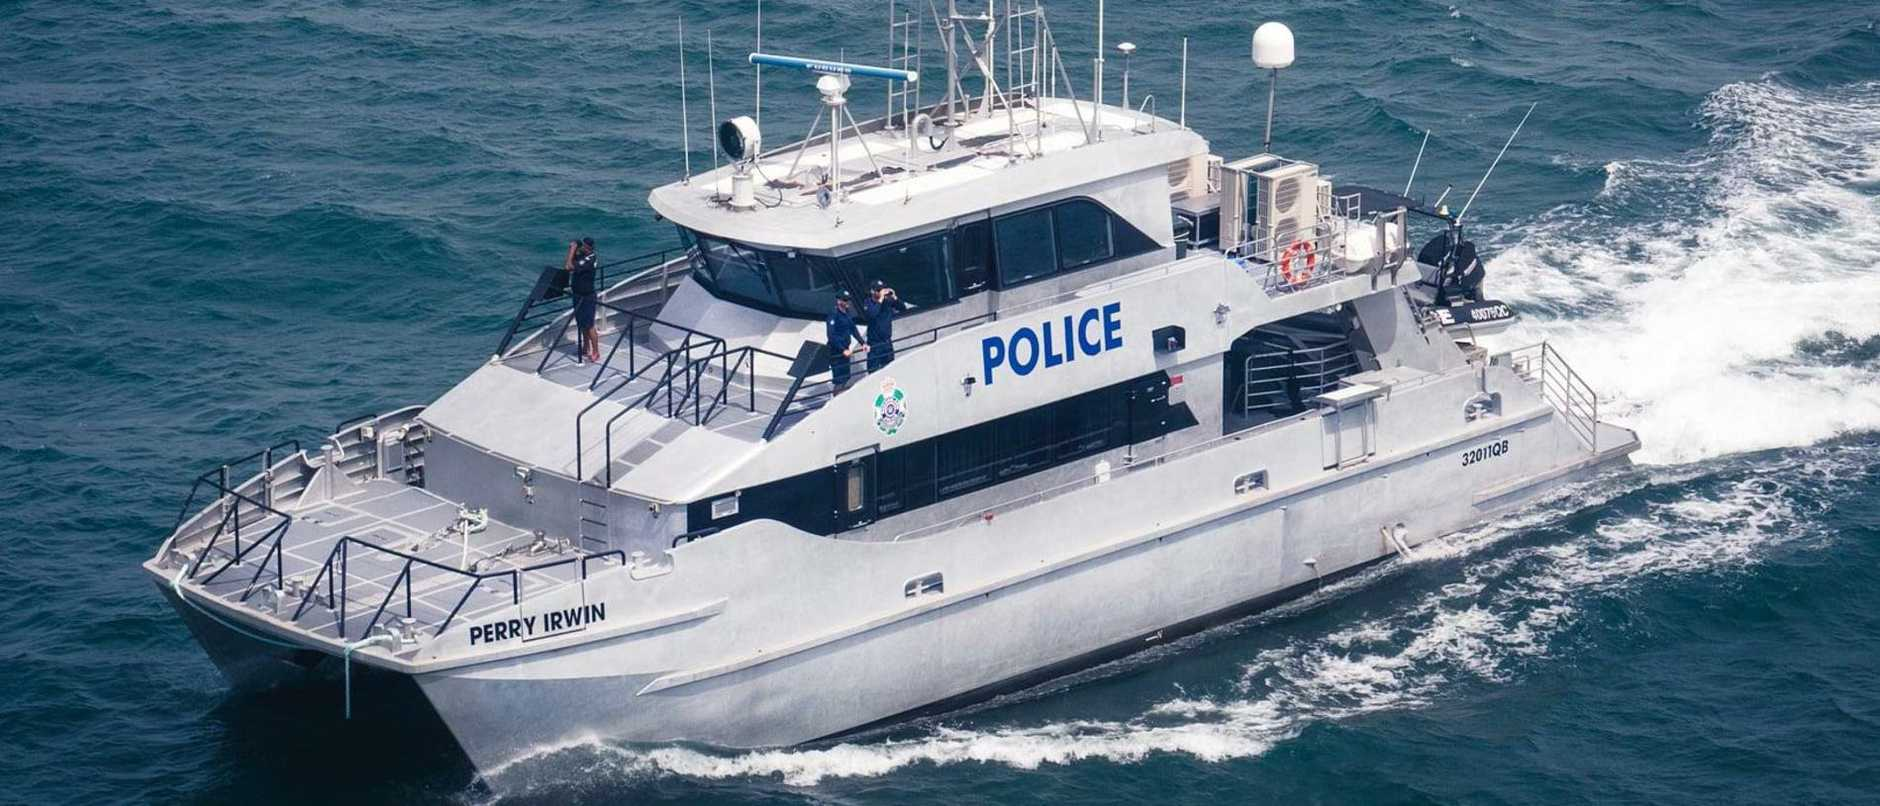 The search for three Yarrabah men who failed to return from an Australia Day fishing trip has been abandoned, police have confirmed.